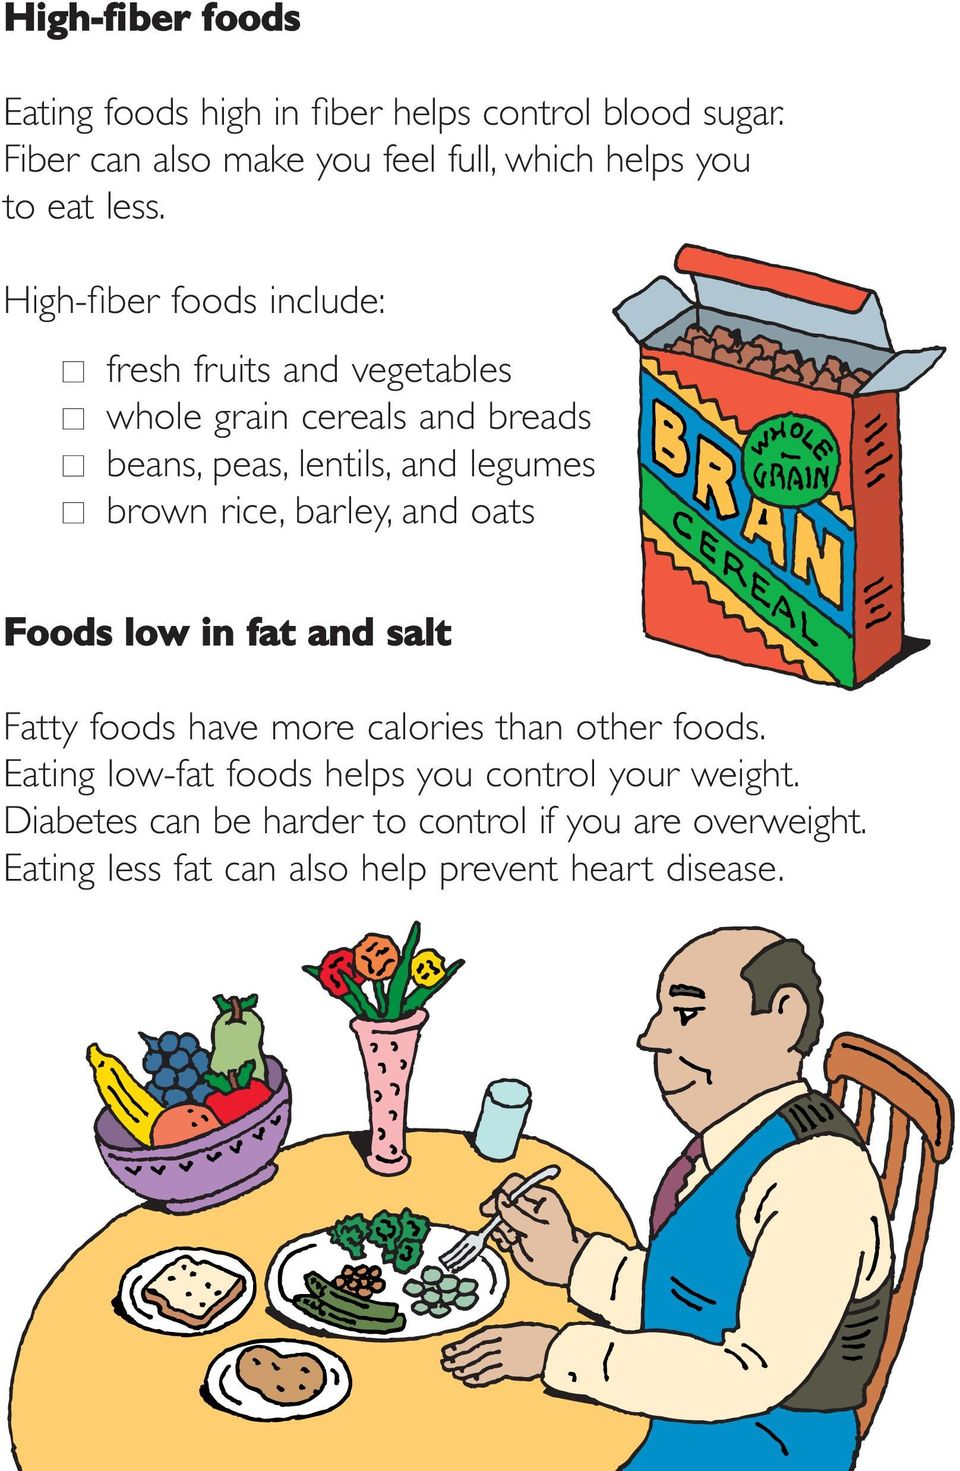 High-fiber foods include: fresh fruits and vegetables whole grain cereals and breads beans, peas, lentils, and legumes brown